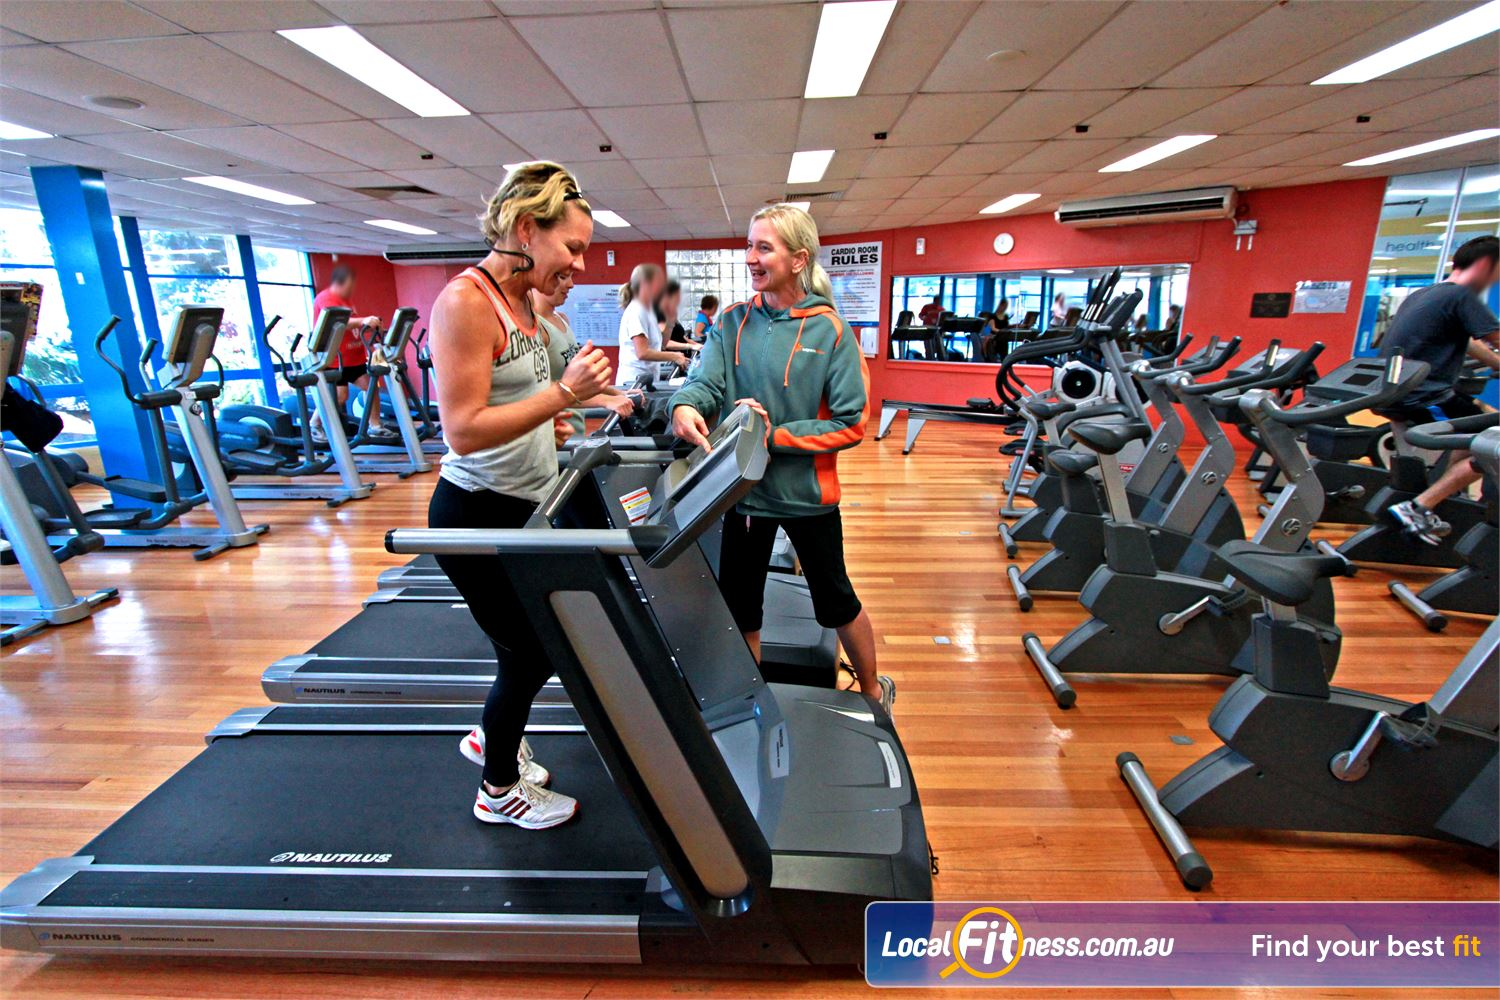 East Keilor Leisure Centre Keilor East East Keilor gym instructors who are eager to help with your weight-loss and cardio goals.